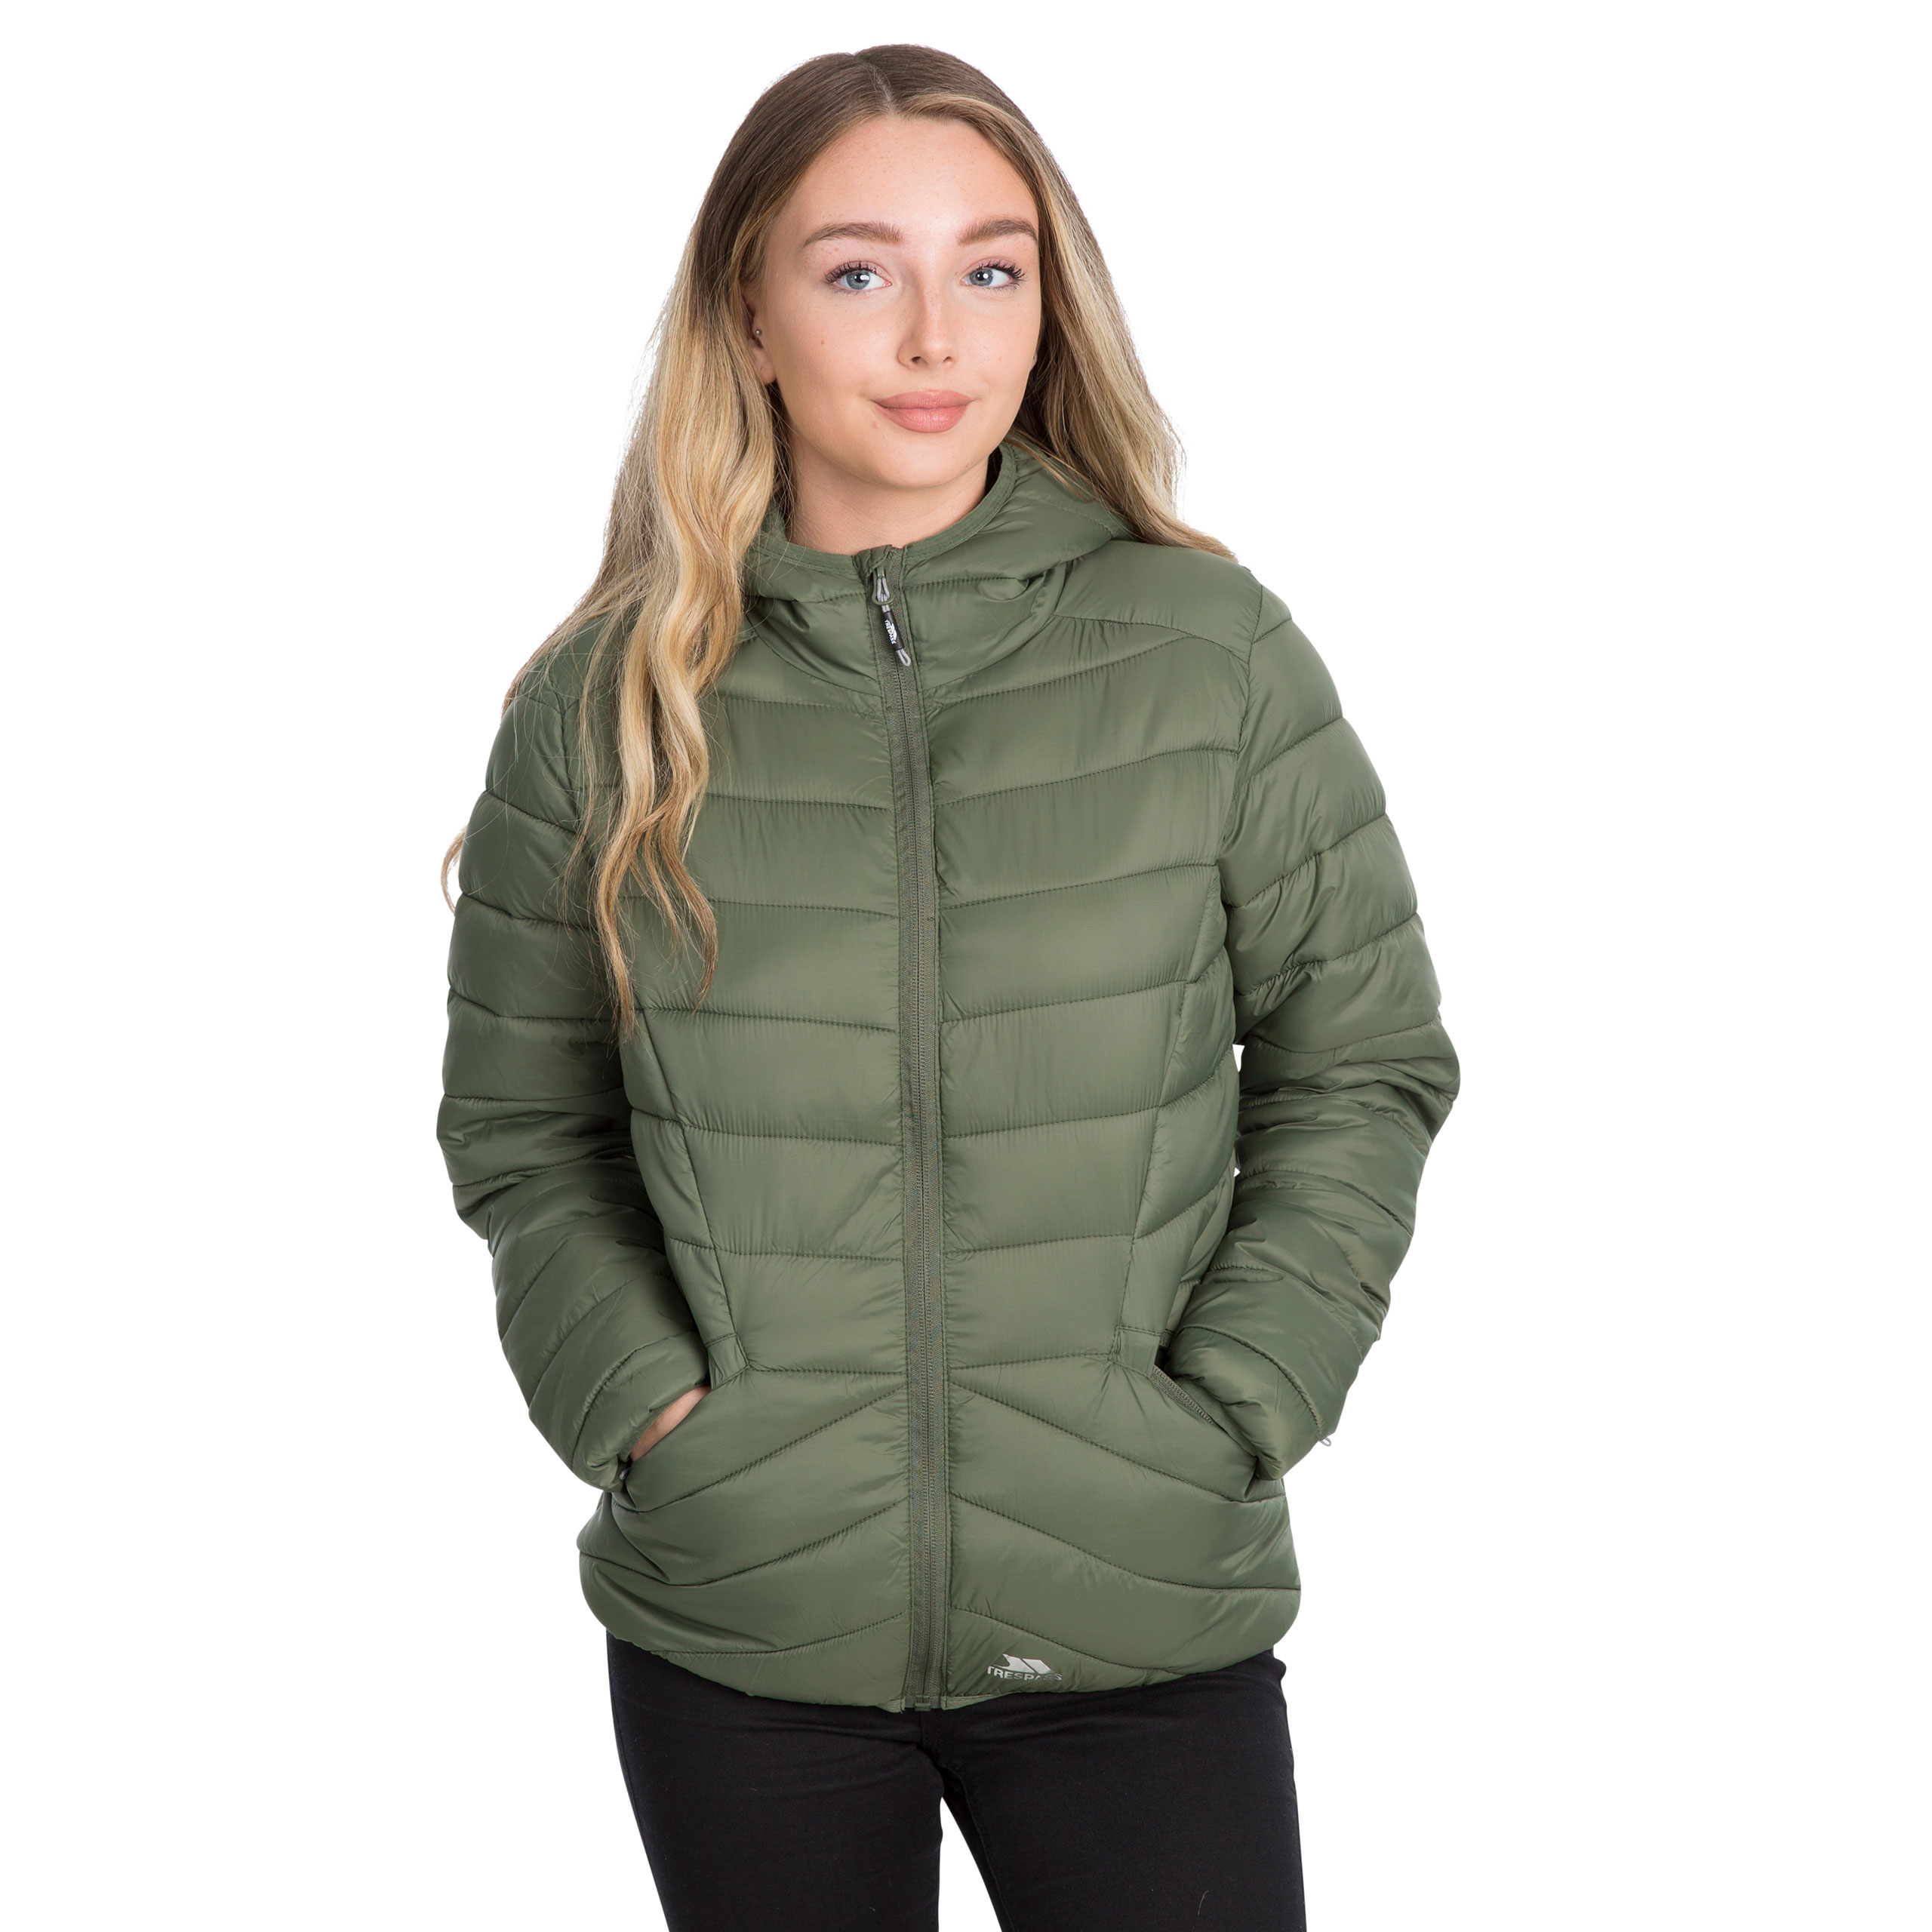 Trespass-Alyssa-Womens-Padded-Jacket-Puffer-With-Hood-For-Ladies thumbnail 13